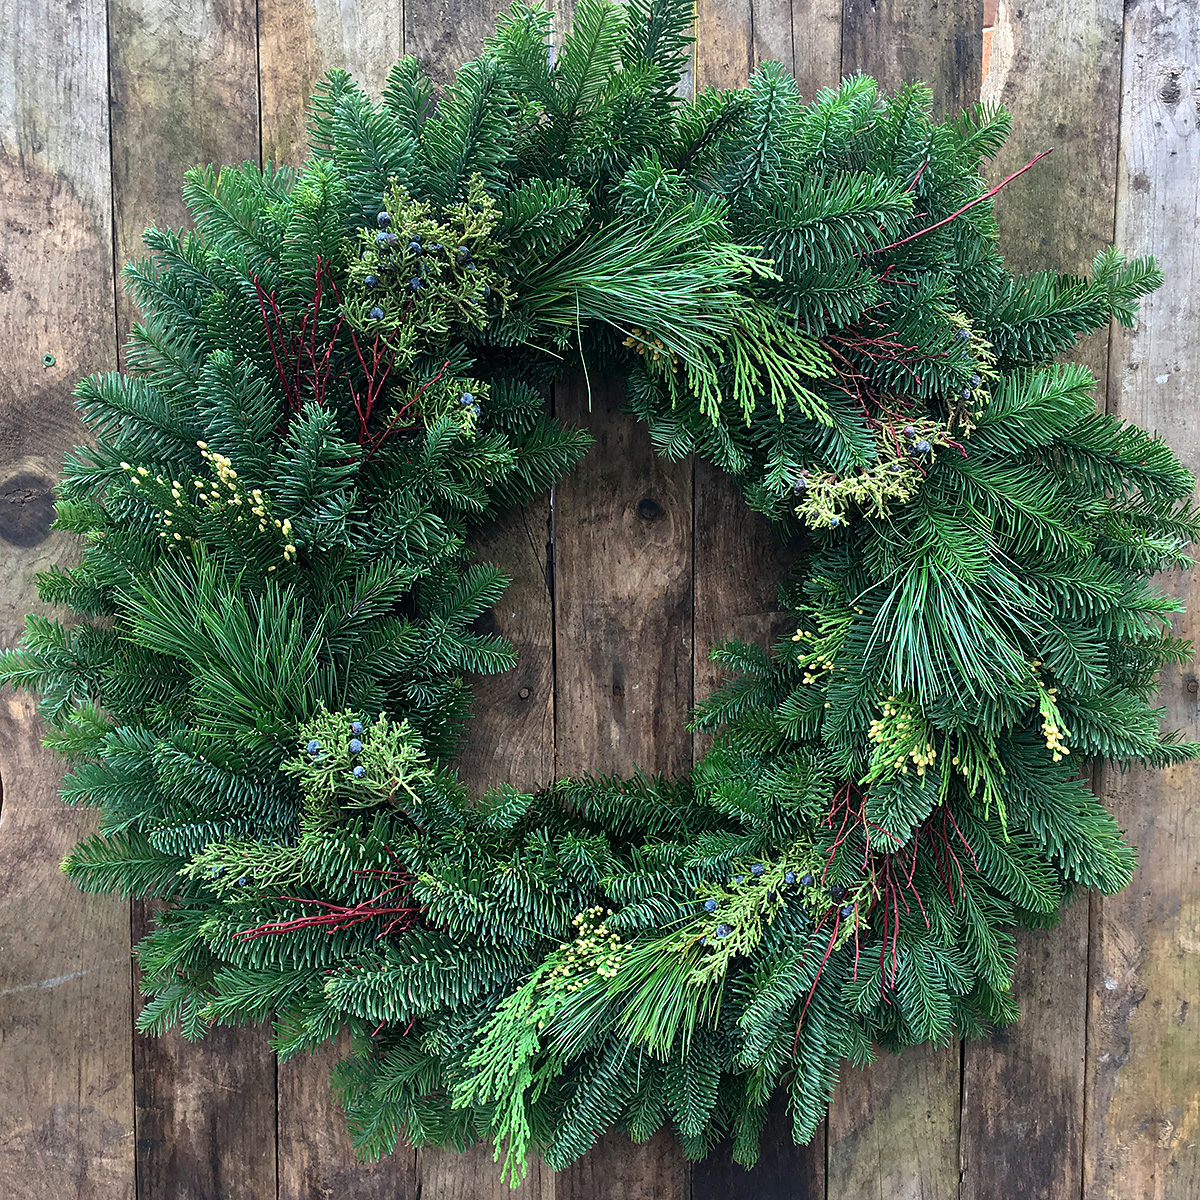 Deluxe 16in Christmas Wreath